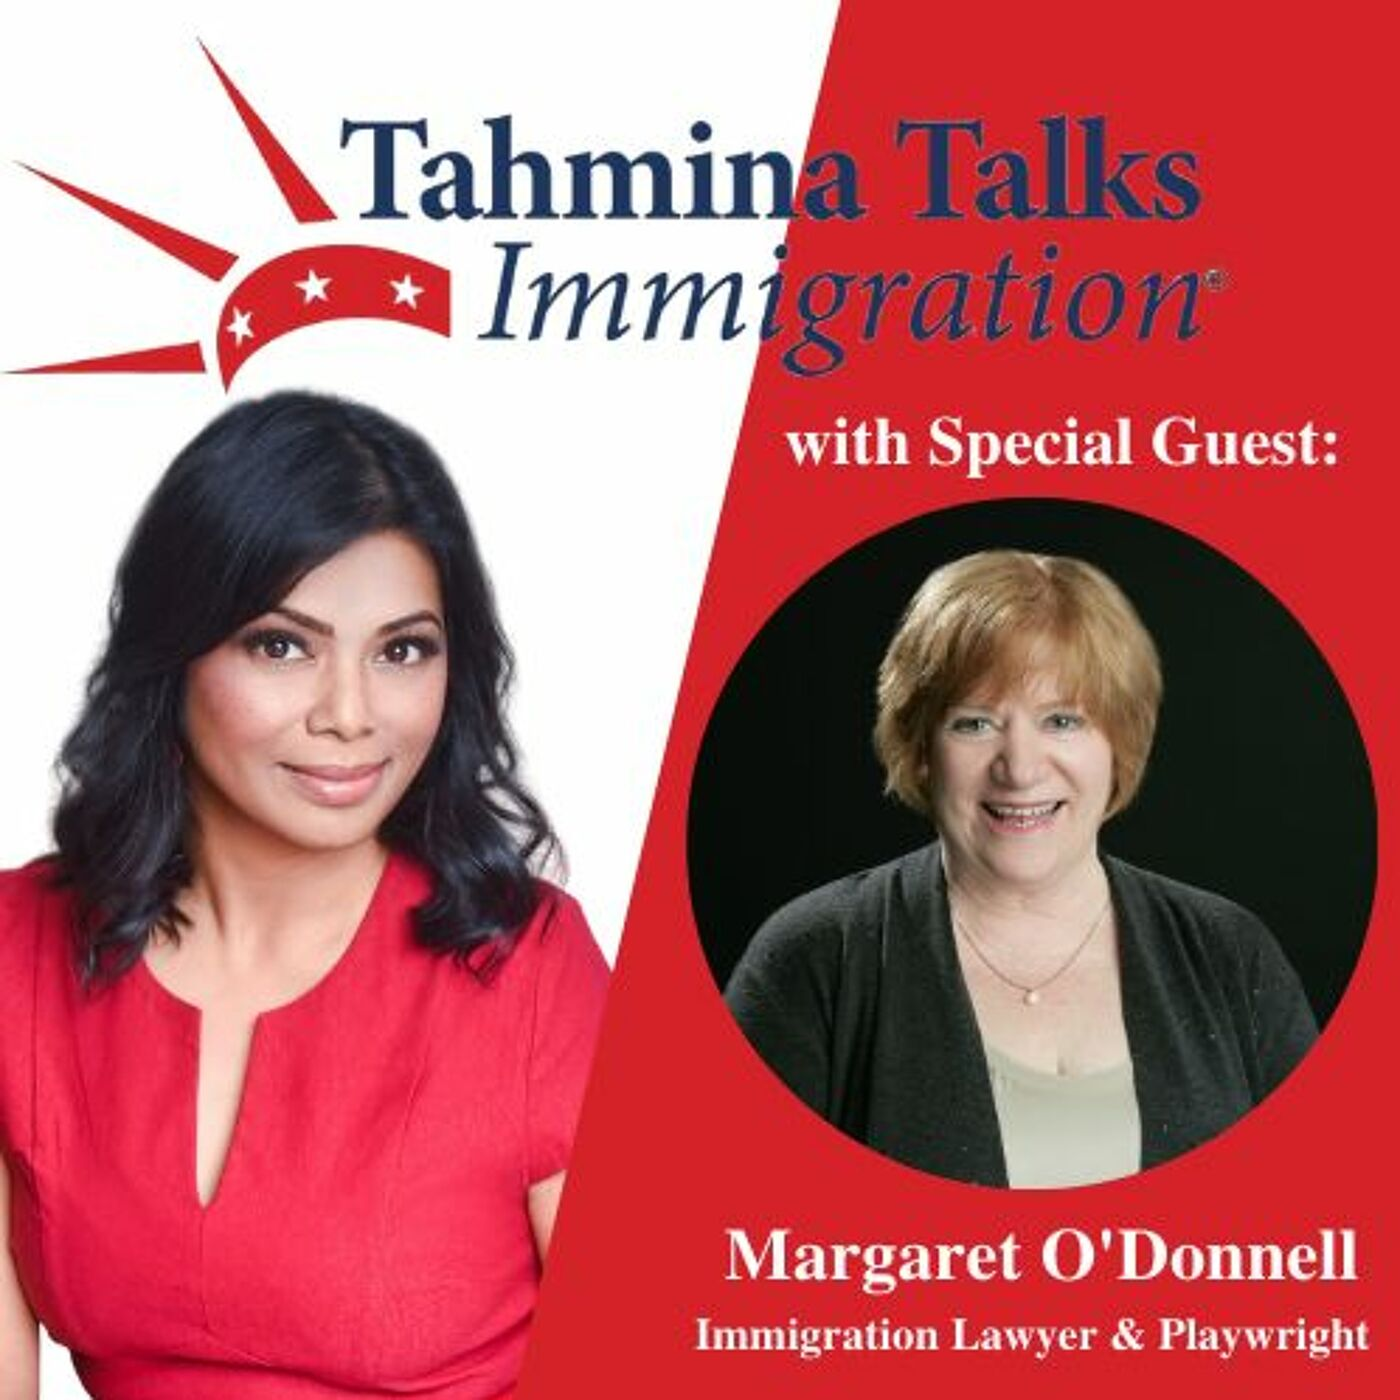 #113 Legal Heroes Series- Margaret O'Donnell, Playwright & Immigration Lawyer